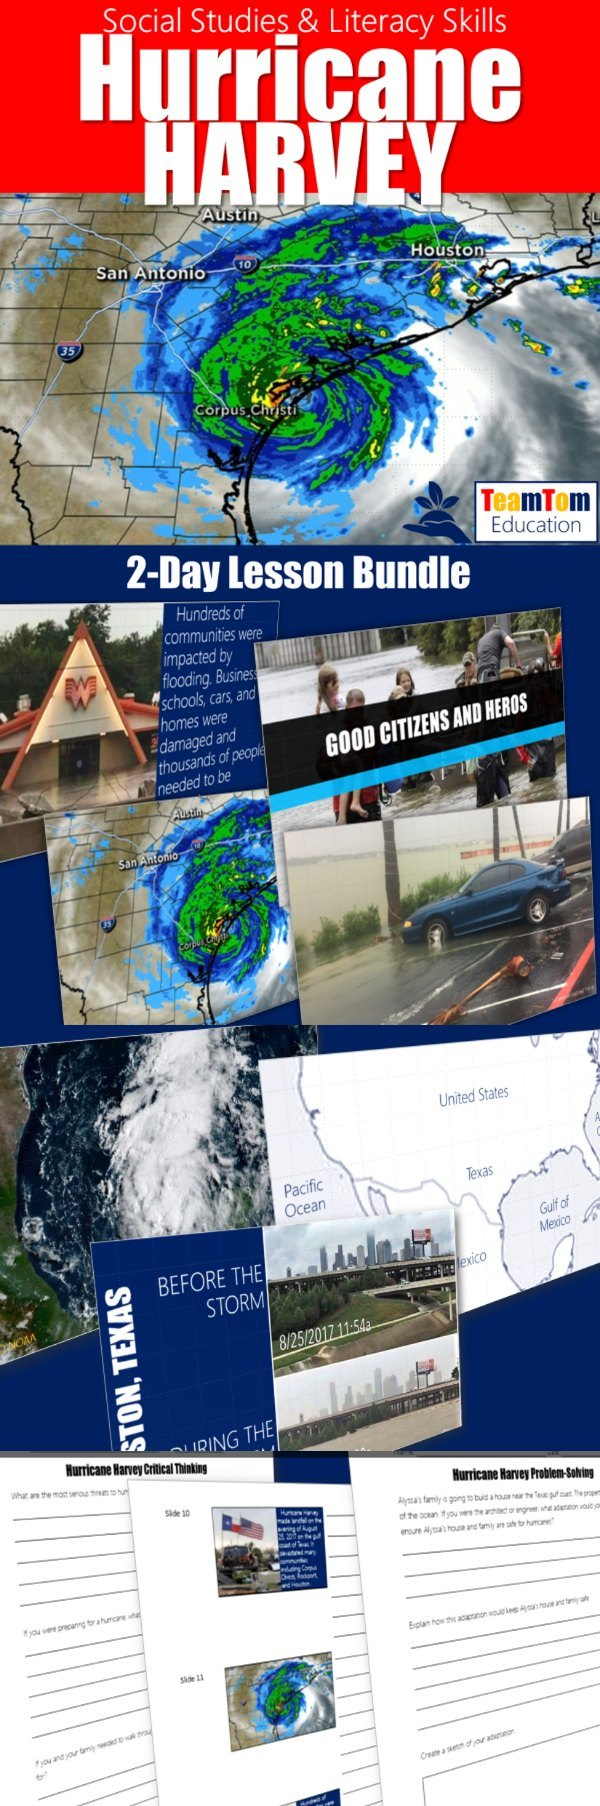 These activities will help students visualize the devastating impact of Hurricane Harvey